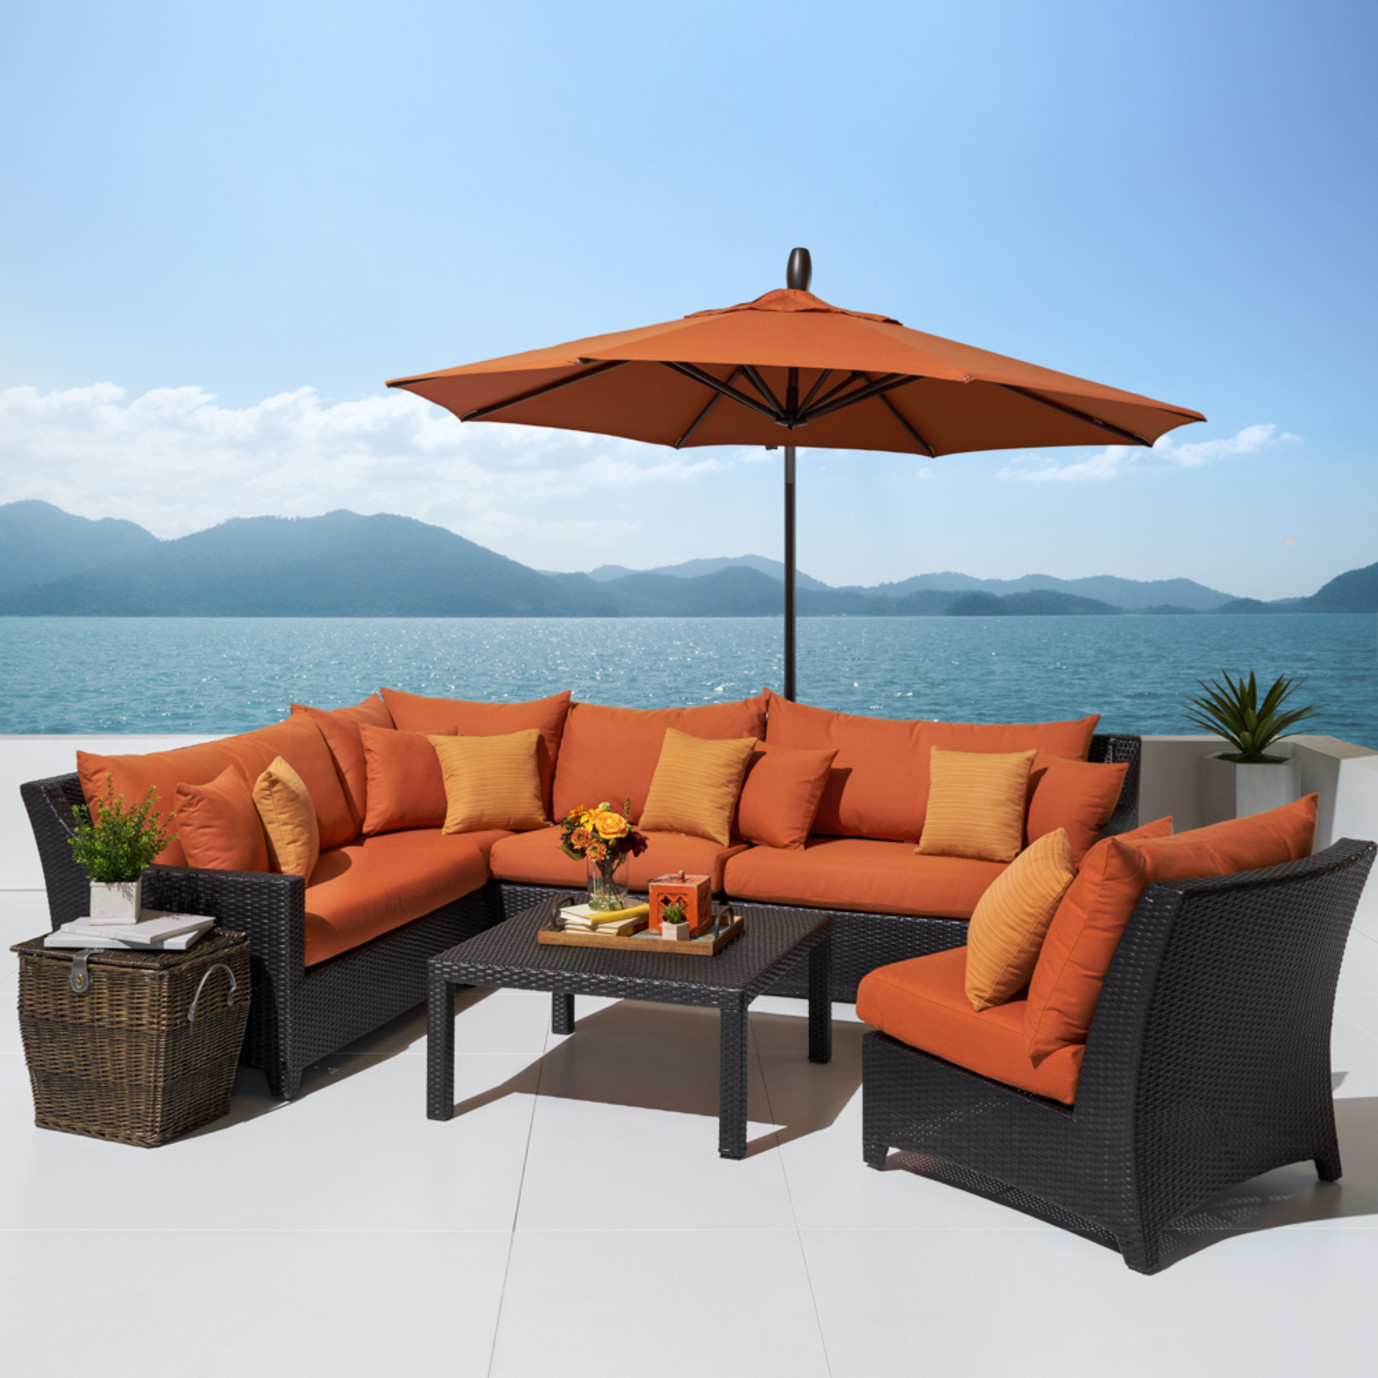 Deco™ 6 Piece Sectional and Table with Umbrella - Tikka Orange